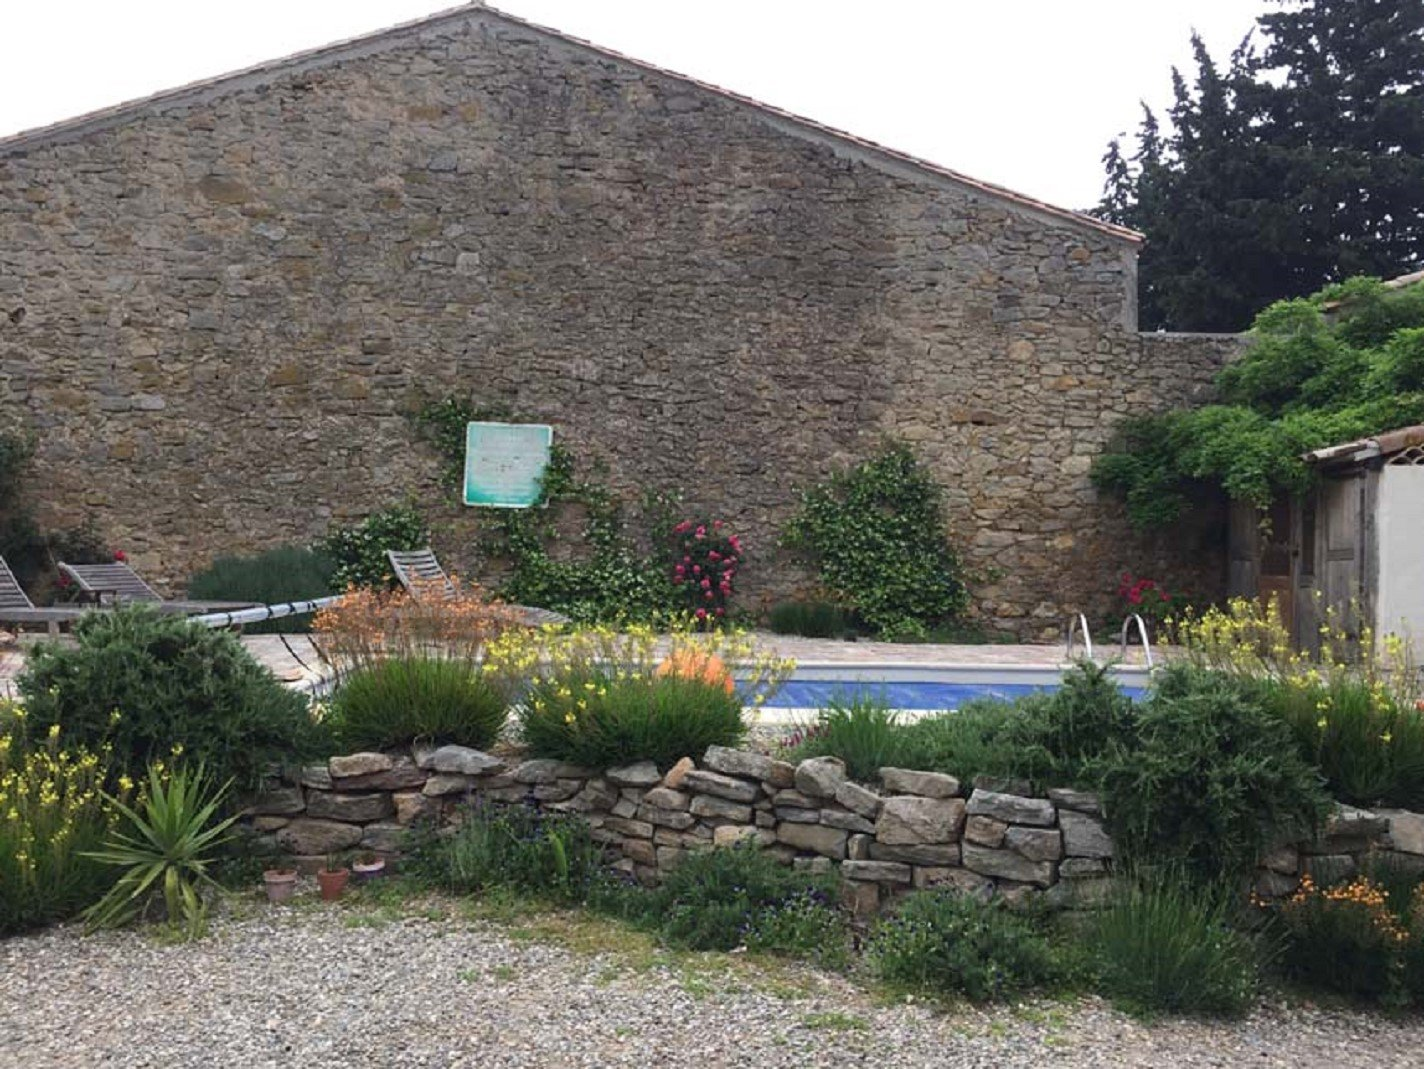 Maison de maître with large garden and swimming pool